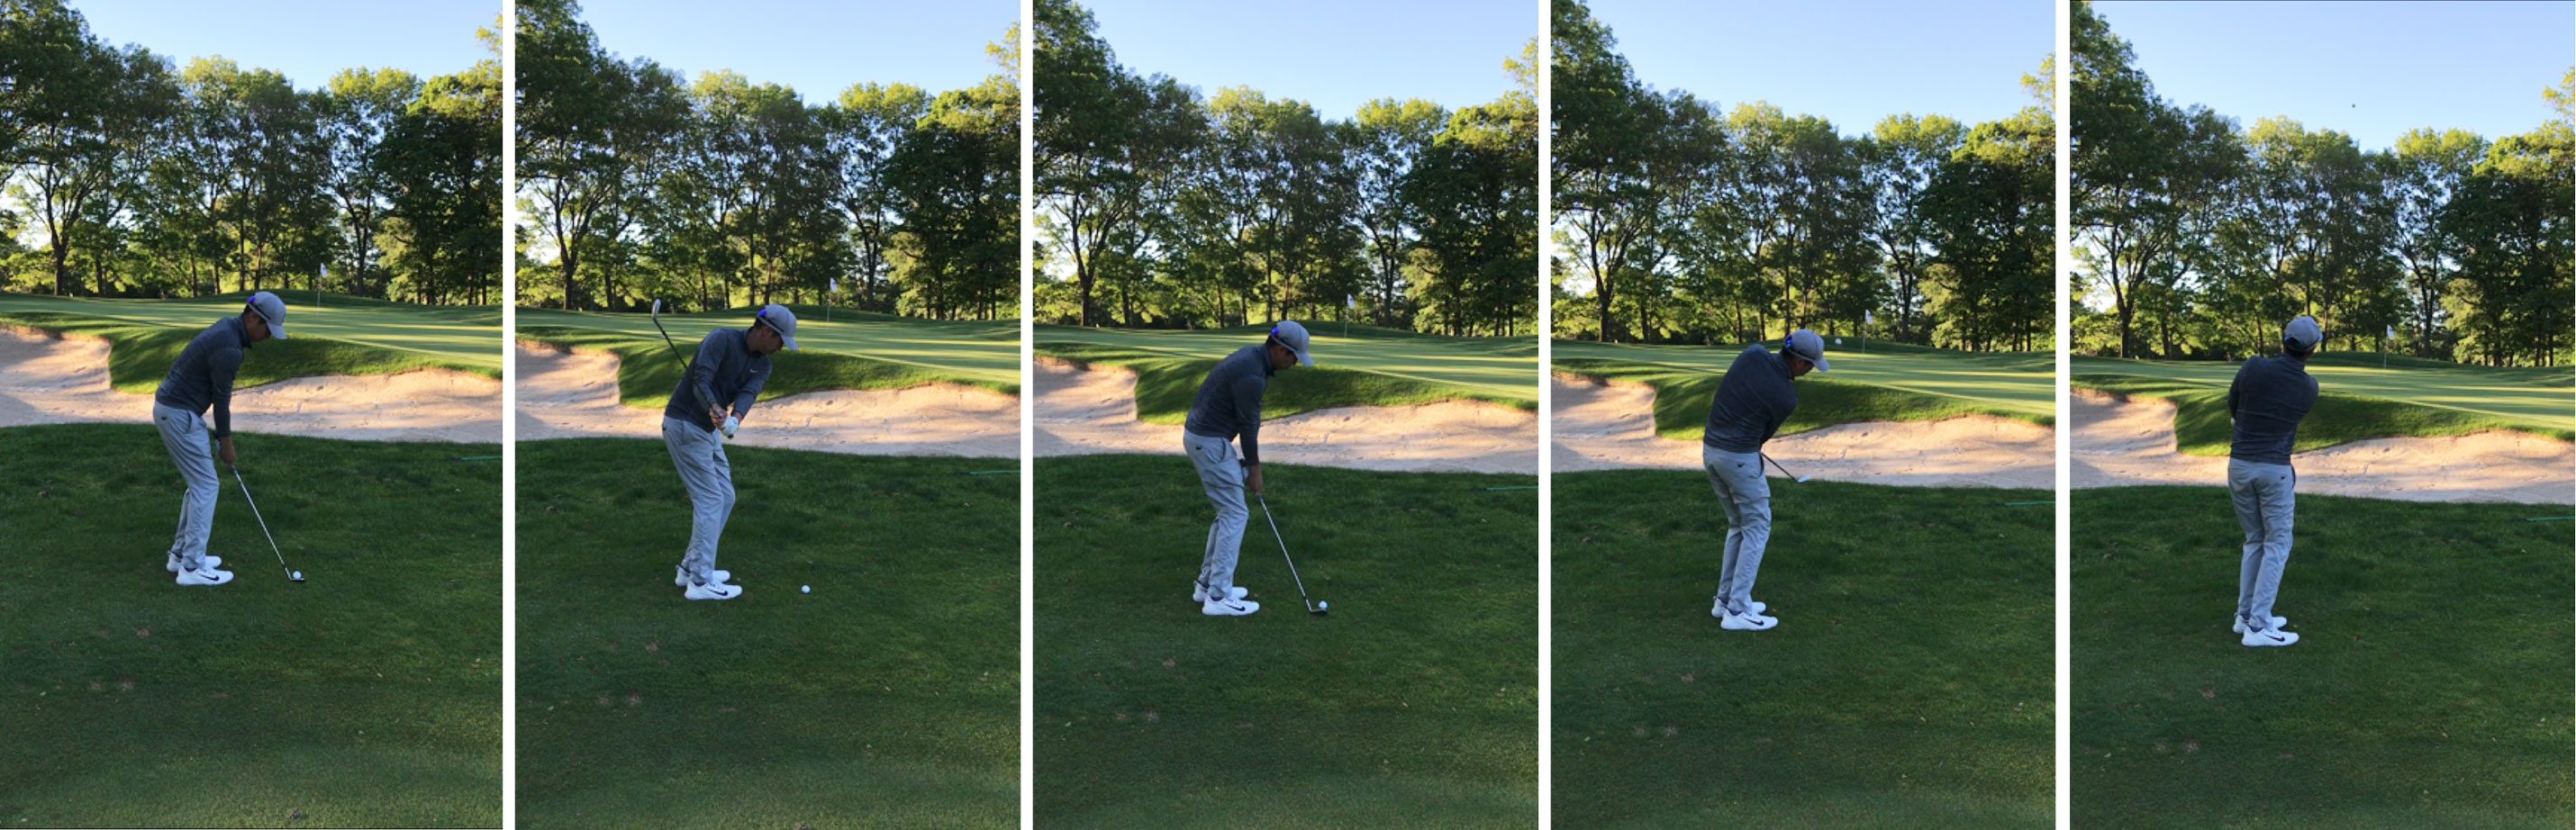 Chipping tip from Brian Hwang